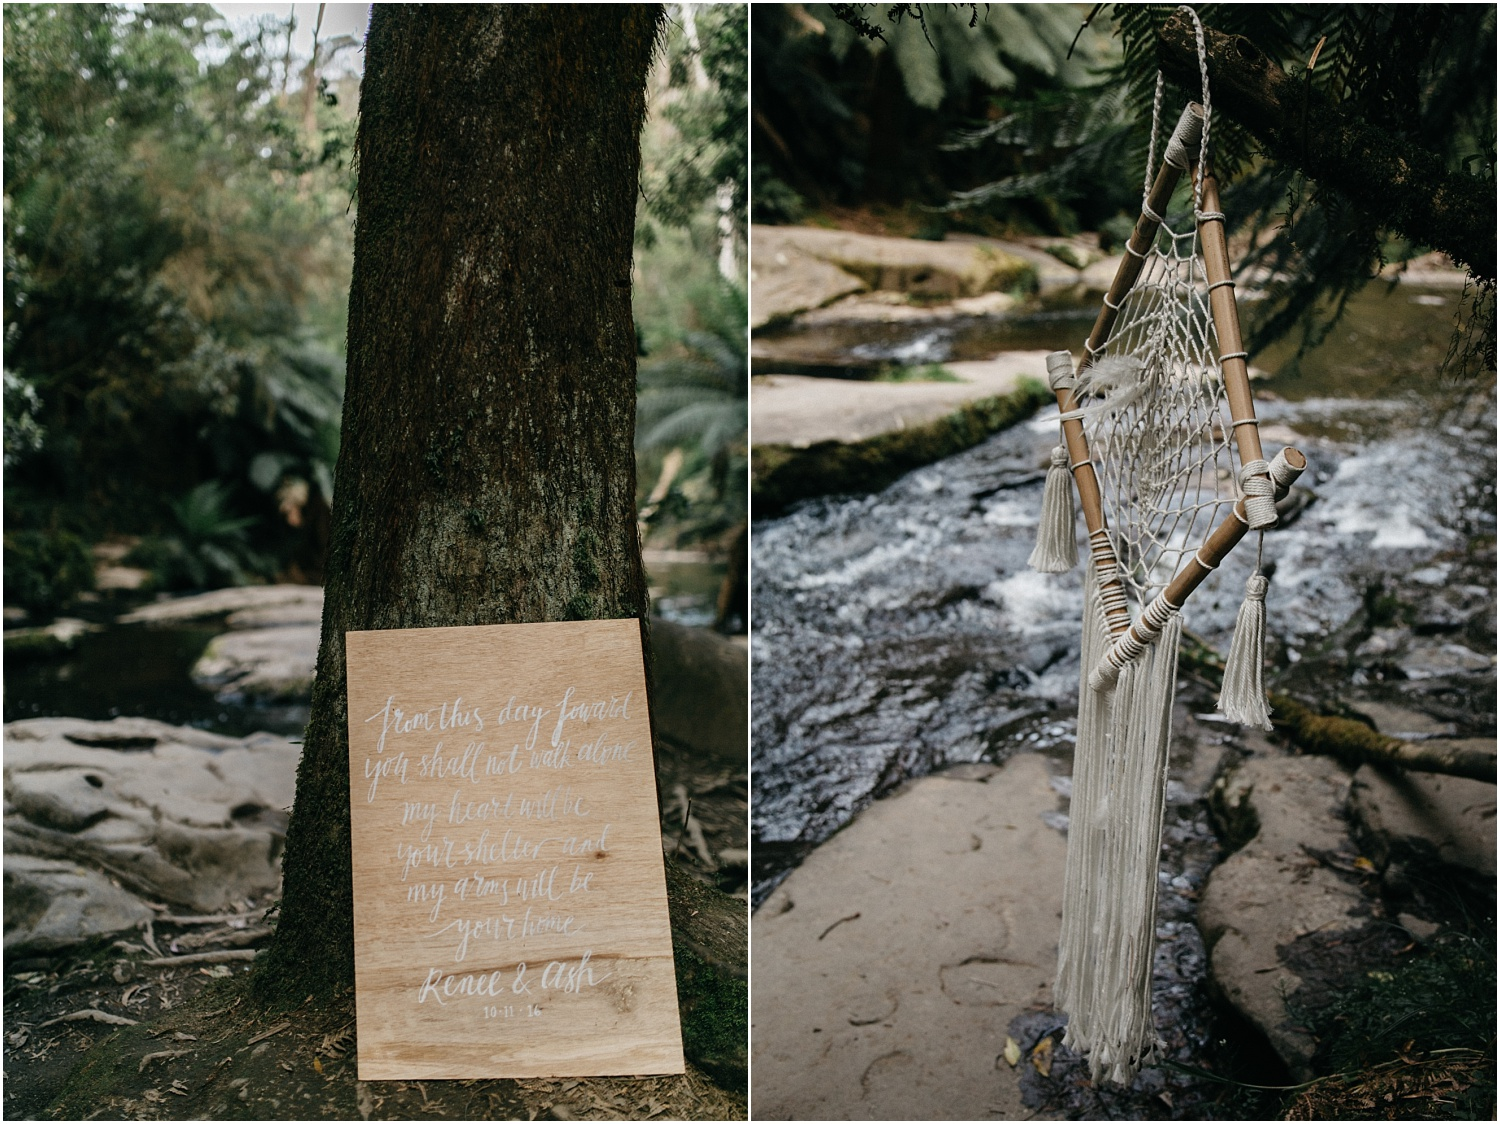 Renee and Ash's real elopement in Lorne on the Great Ocean Roadwith the ceremony at erskin falls._0067.jpg